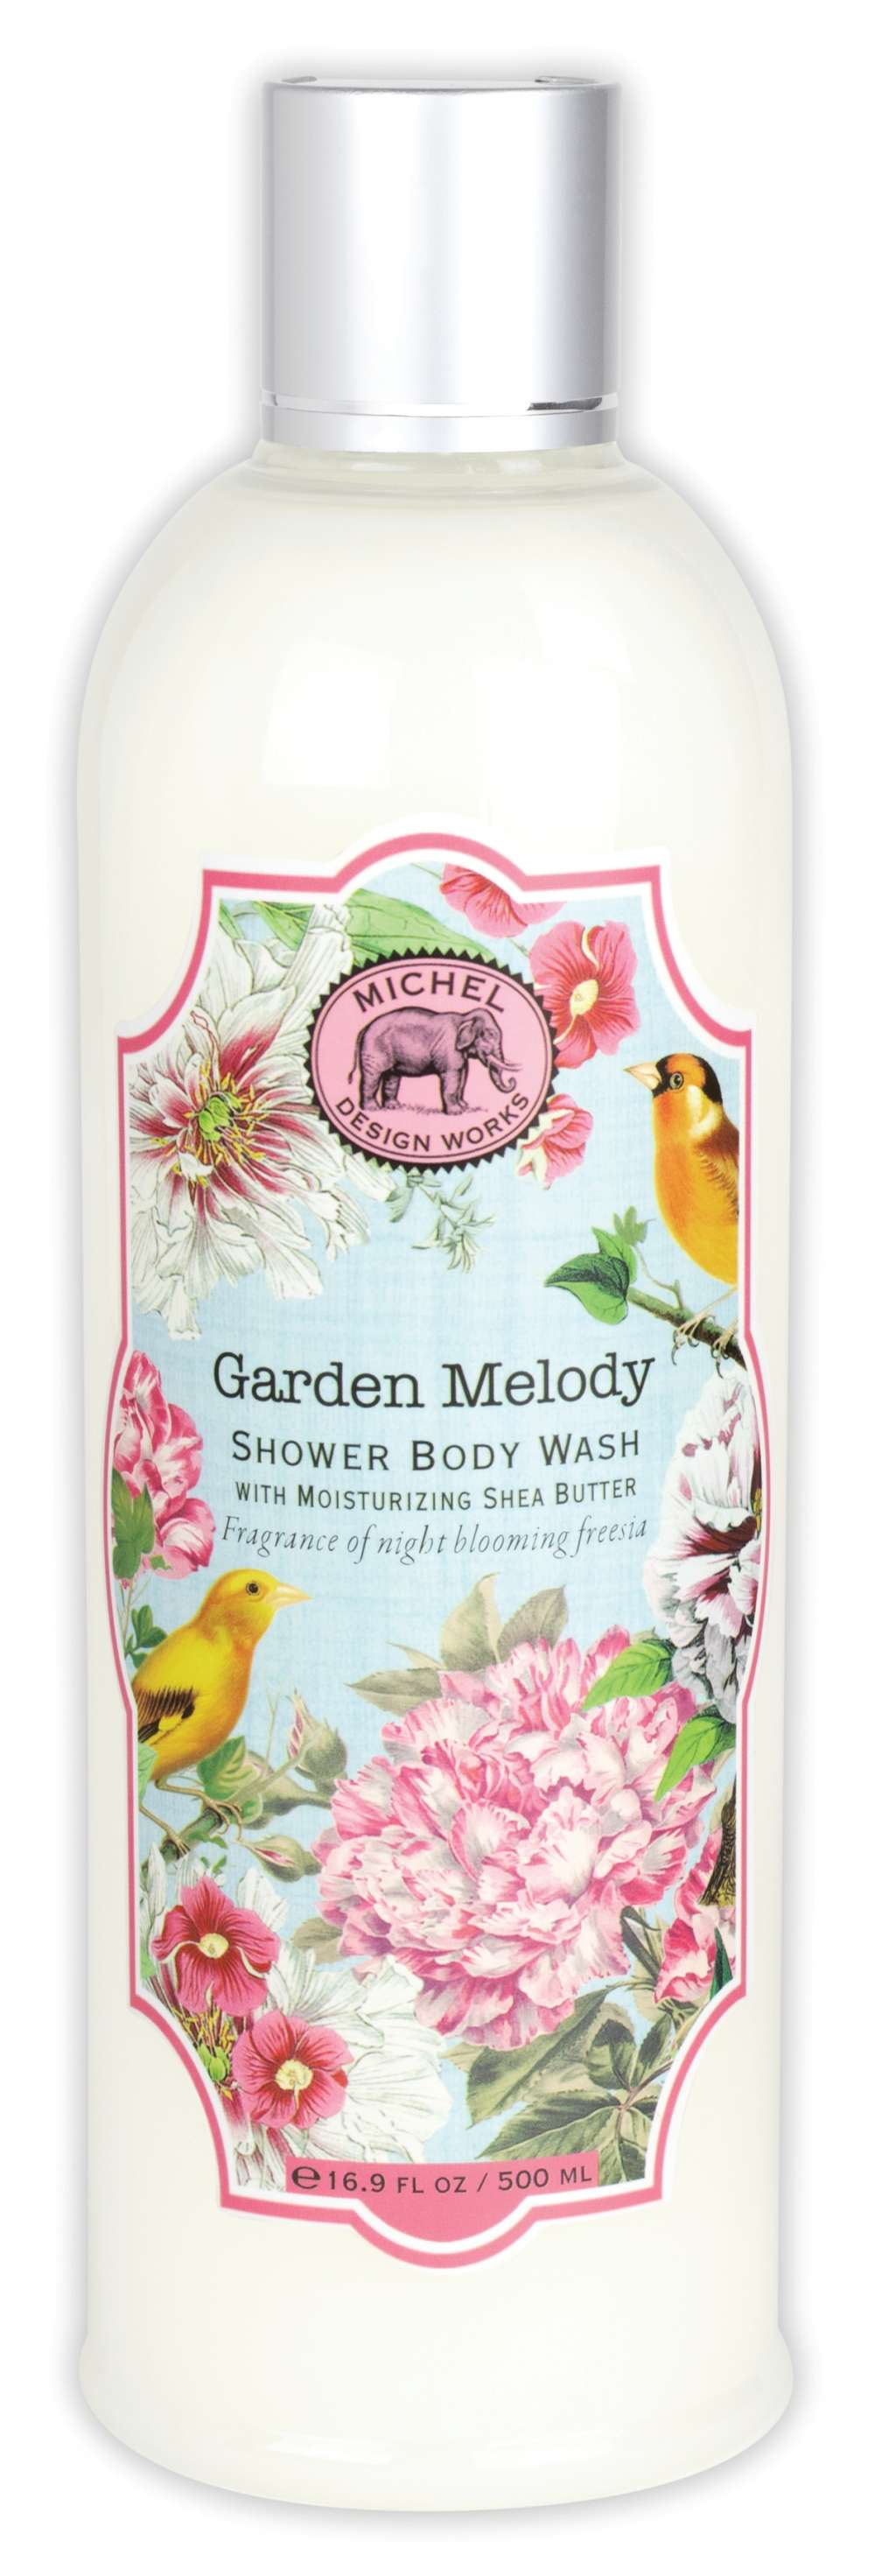 Garden Melody Shower Body Wash New By Michel Design Works